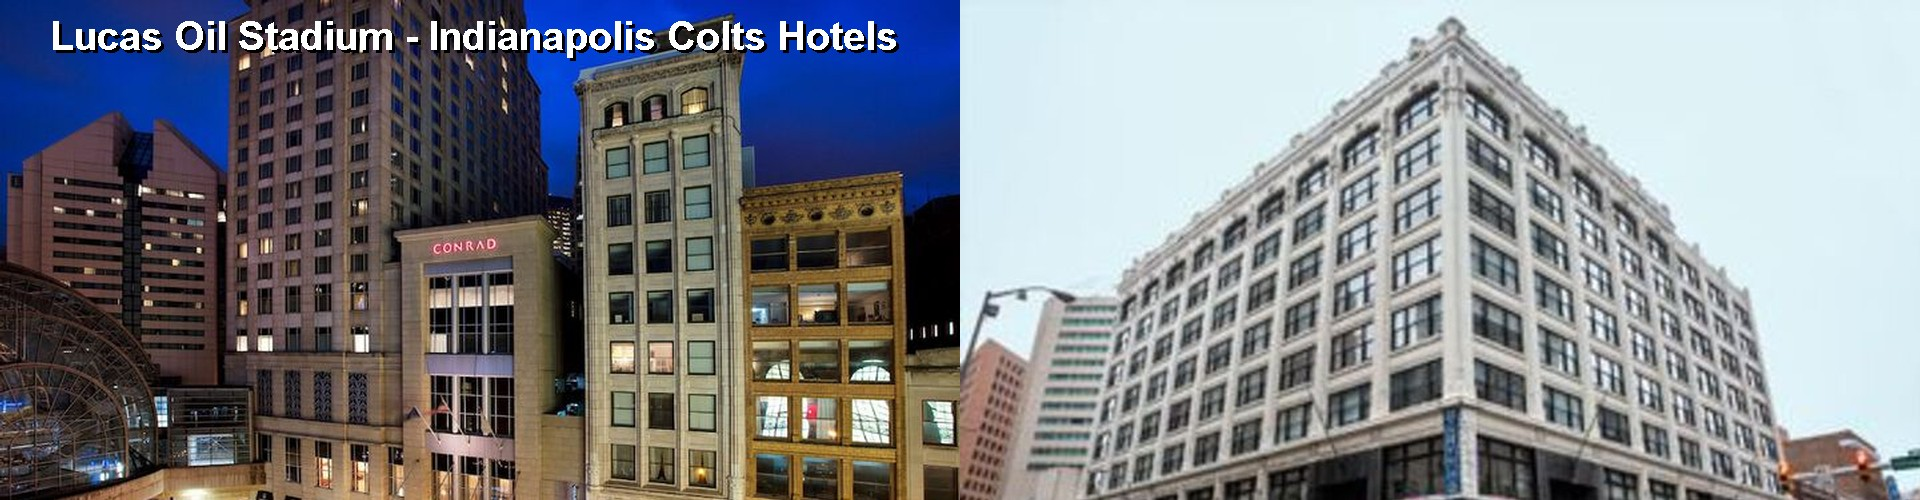 5 Best Hotels near Lucas Oil Stadium - Indianapolis Colts